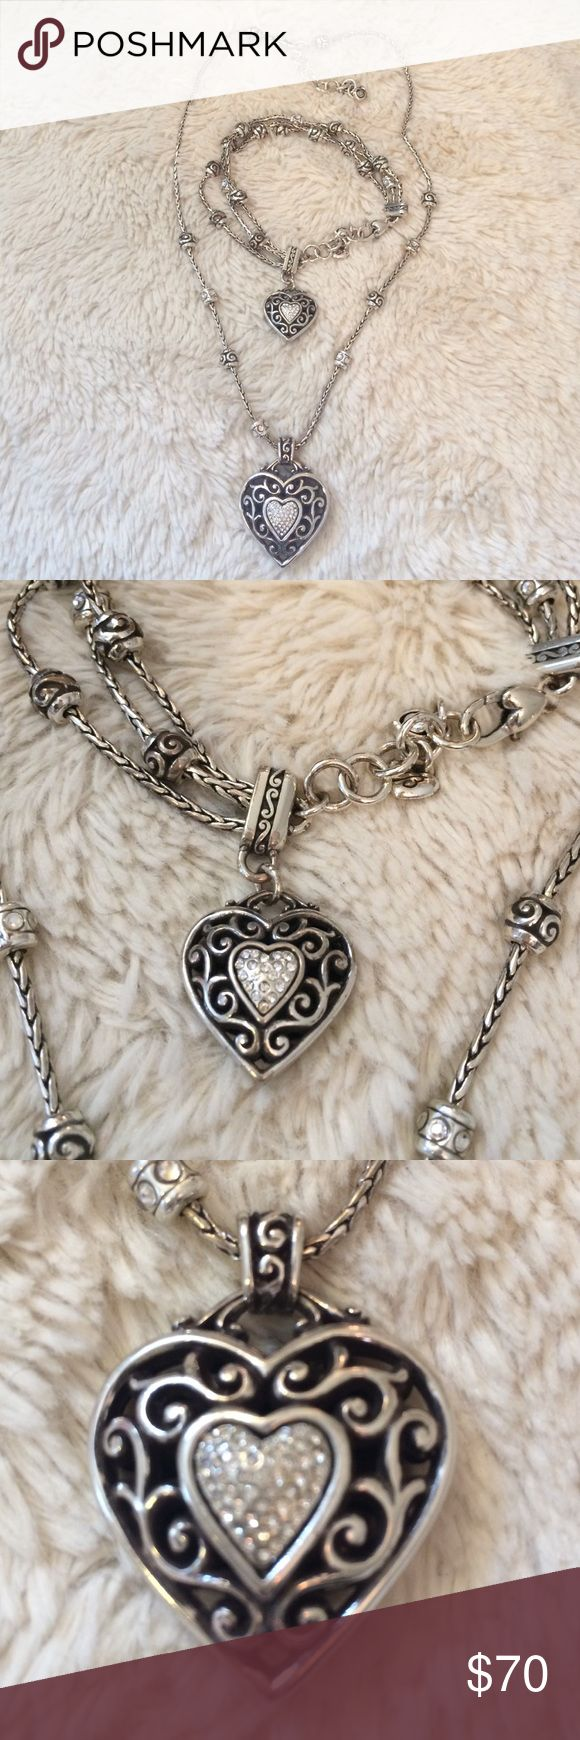 Brighton Necklace & Bracelet Reno heart necklace & bracelet. Swarovski crystals. Reversible. Lobster clasp. Heart bag included❤️No trades or lowball offers please Brighton Jewelry Necklaces